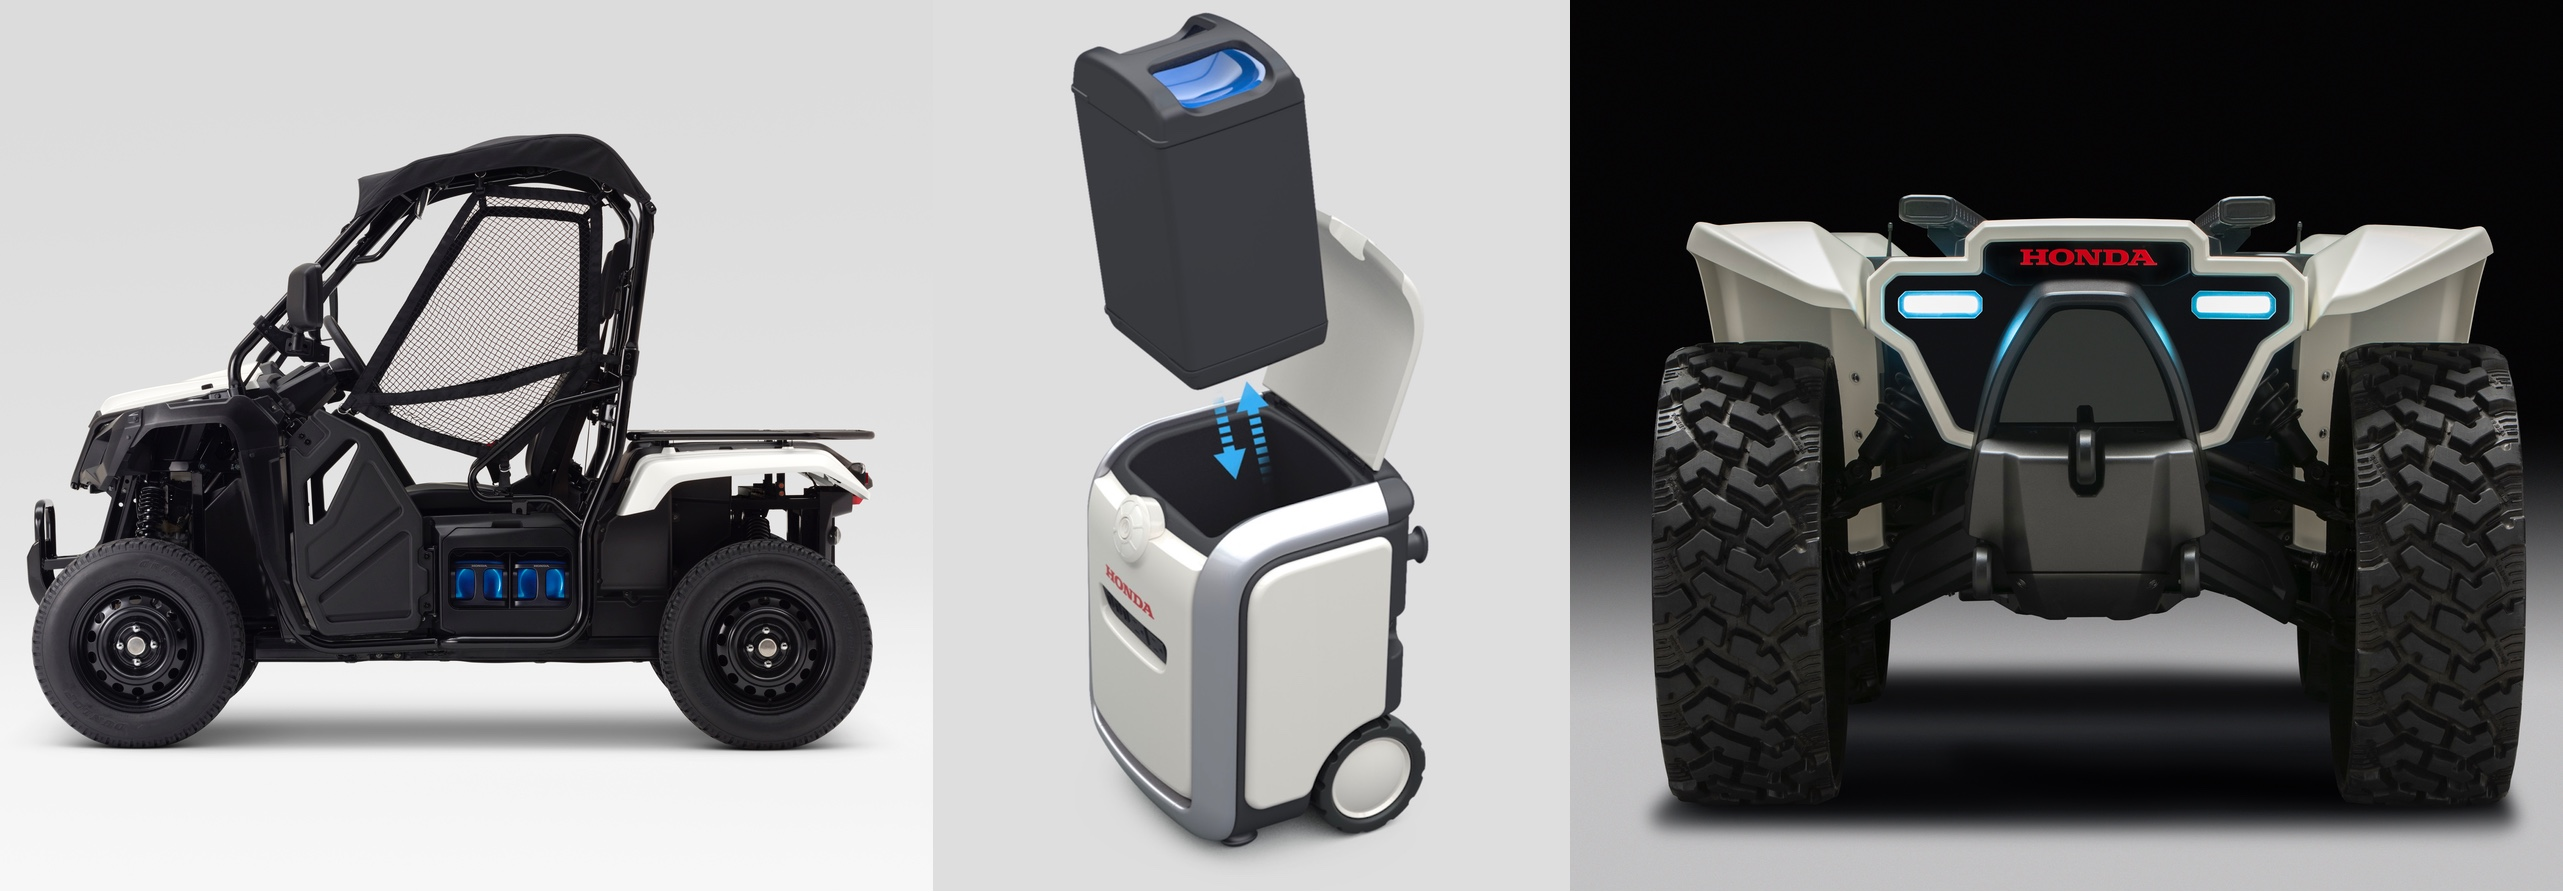 Honda unveils a new swappable battery pack ecosystem powering an ATV, UTV, mobile power pack, and more